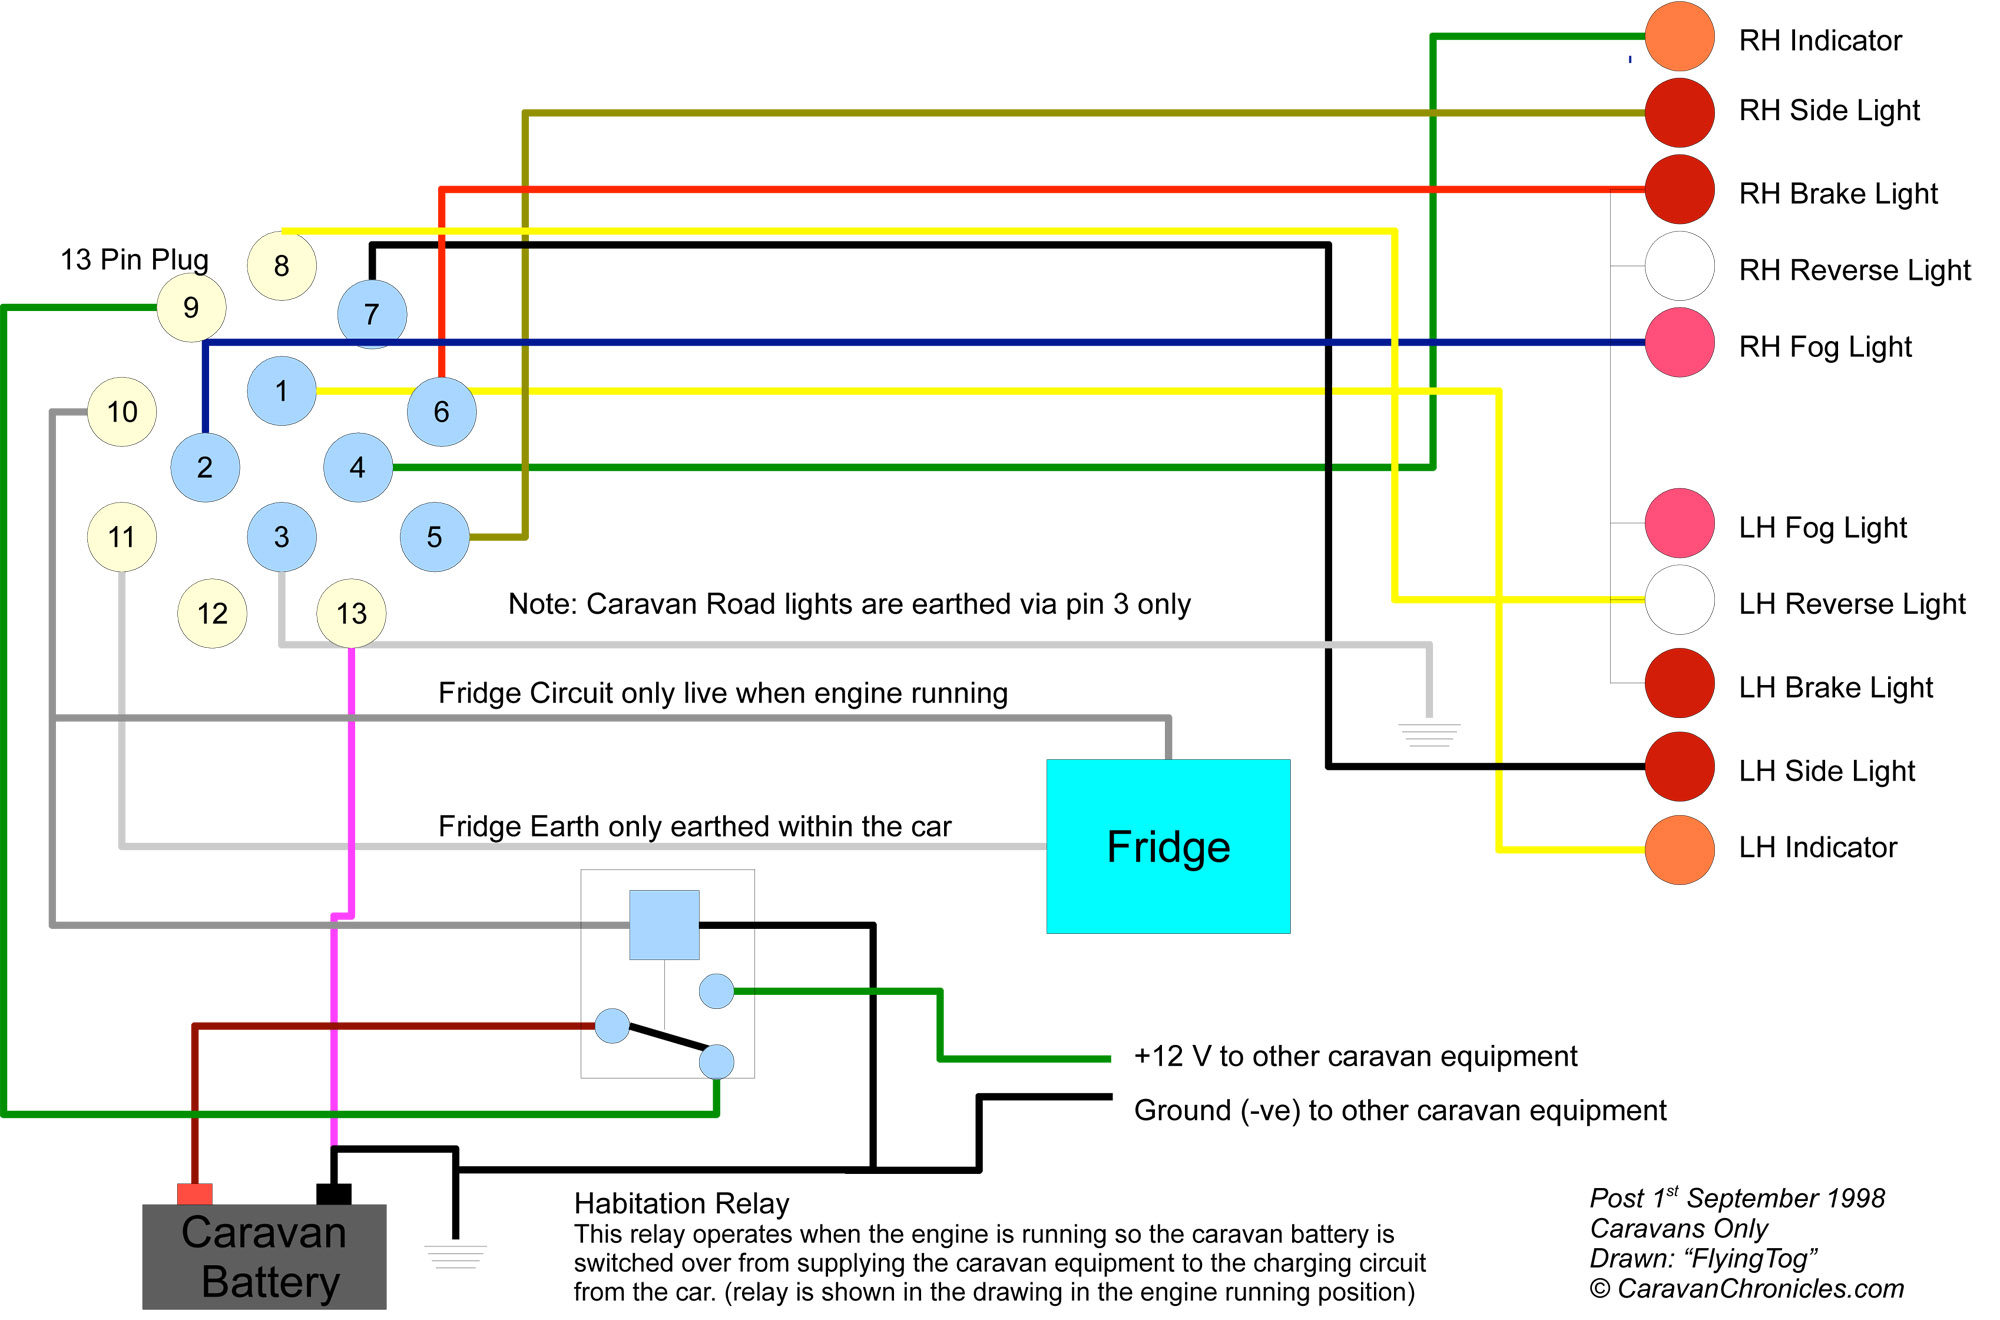 caravan wiring 13 pin understanding caravan and tow car electrics caravan chronicles 13 pin trailer socket wiring diagram uk at soozxer.org